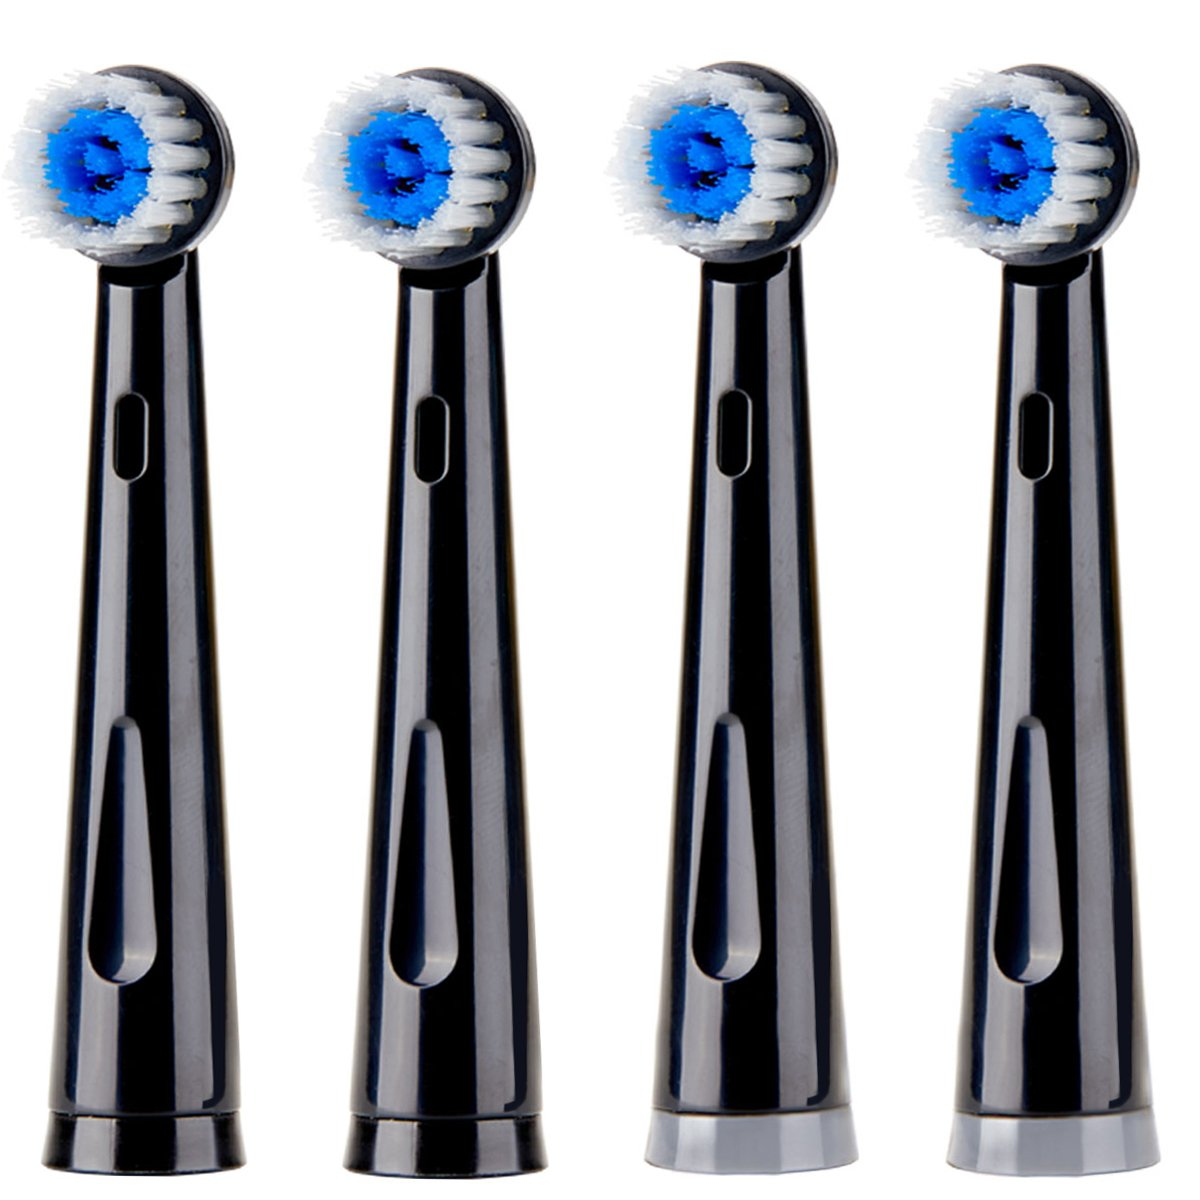 Compatible KIPOZI Rotating Electric Toothbrush Replacement Brush Heads, Electric Toothbrush Heads for KIPOZI RotaryToothbrush(